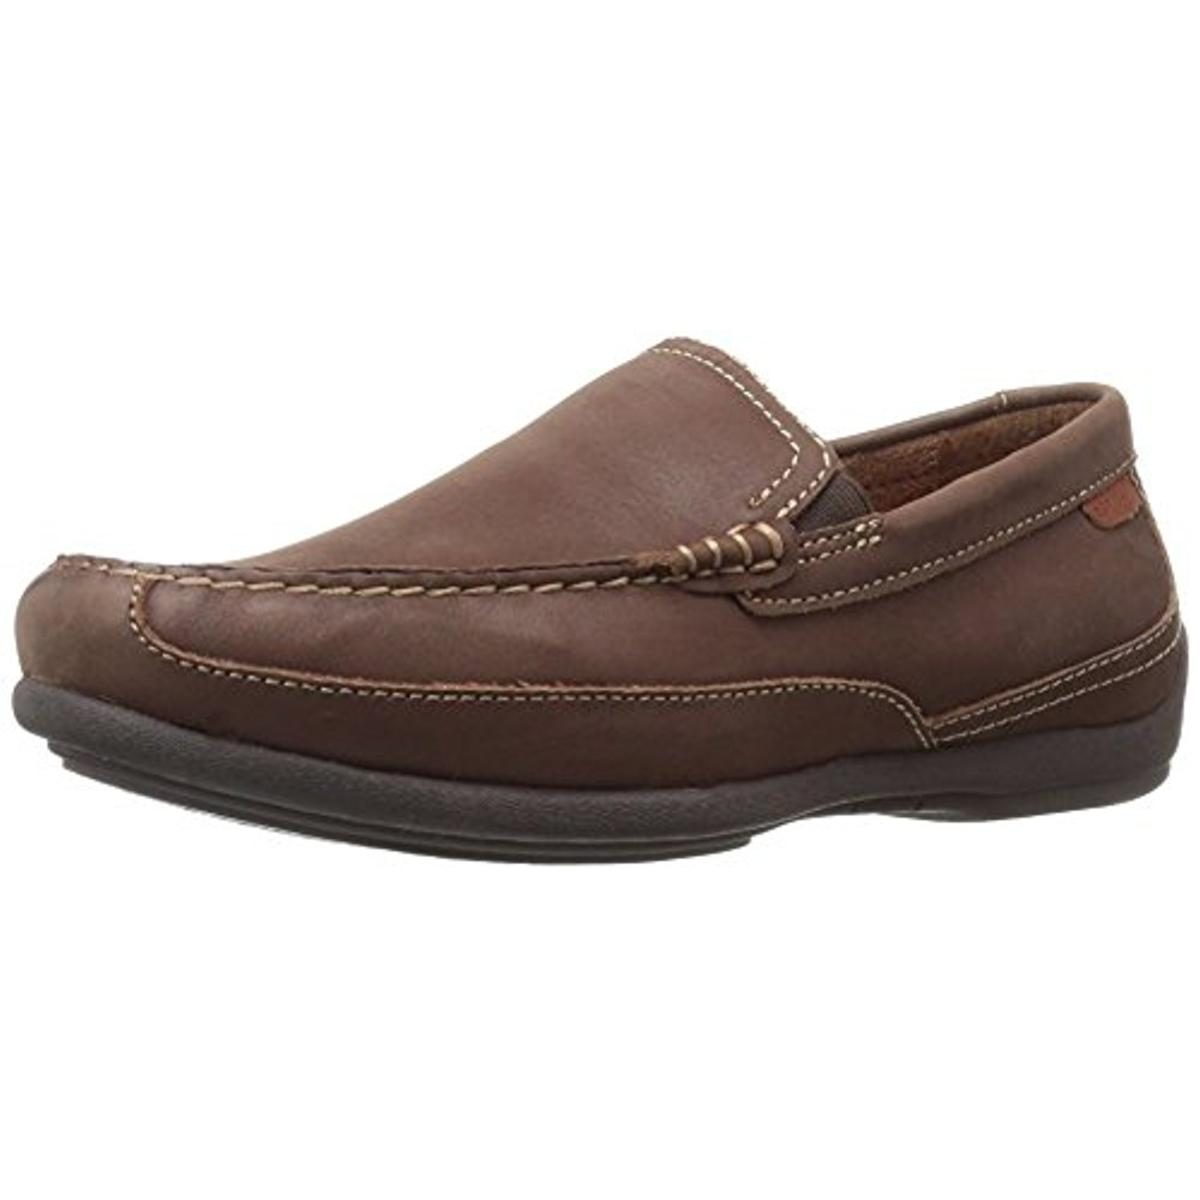 Florsheim Mens Moto Venetian Leather Slip On Loafers by Florsheim